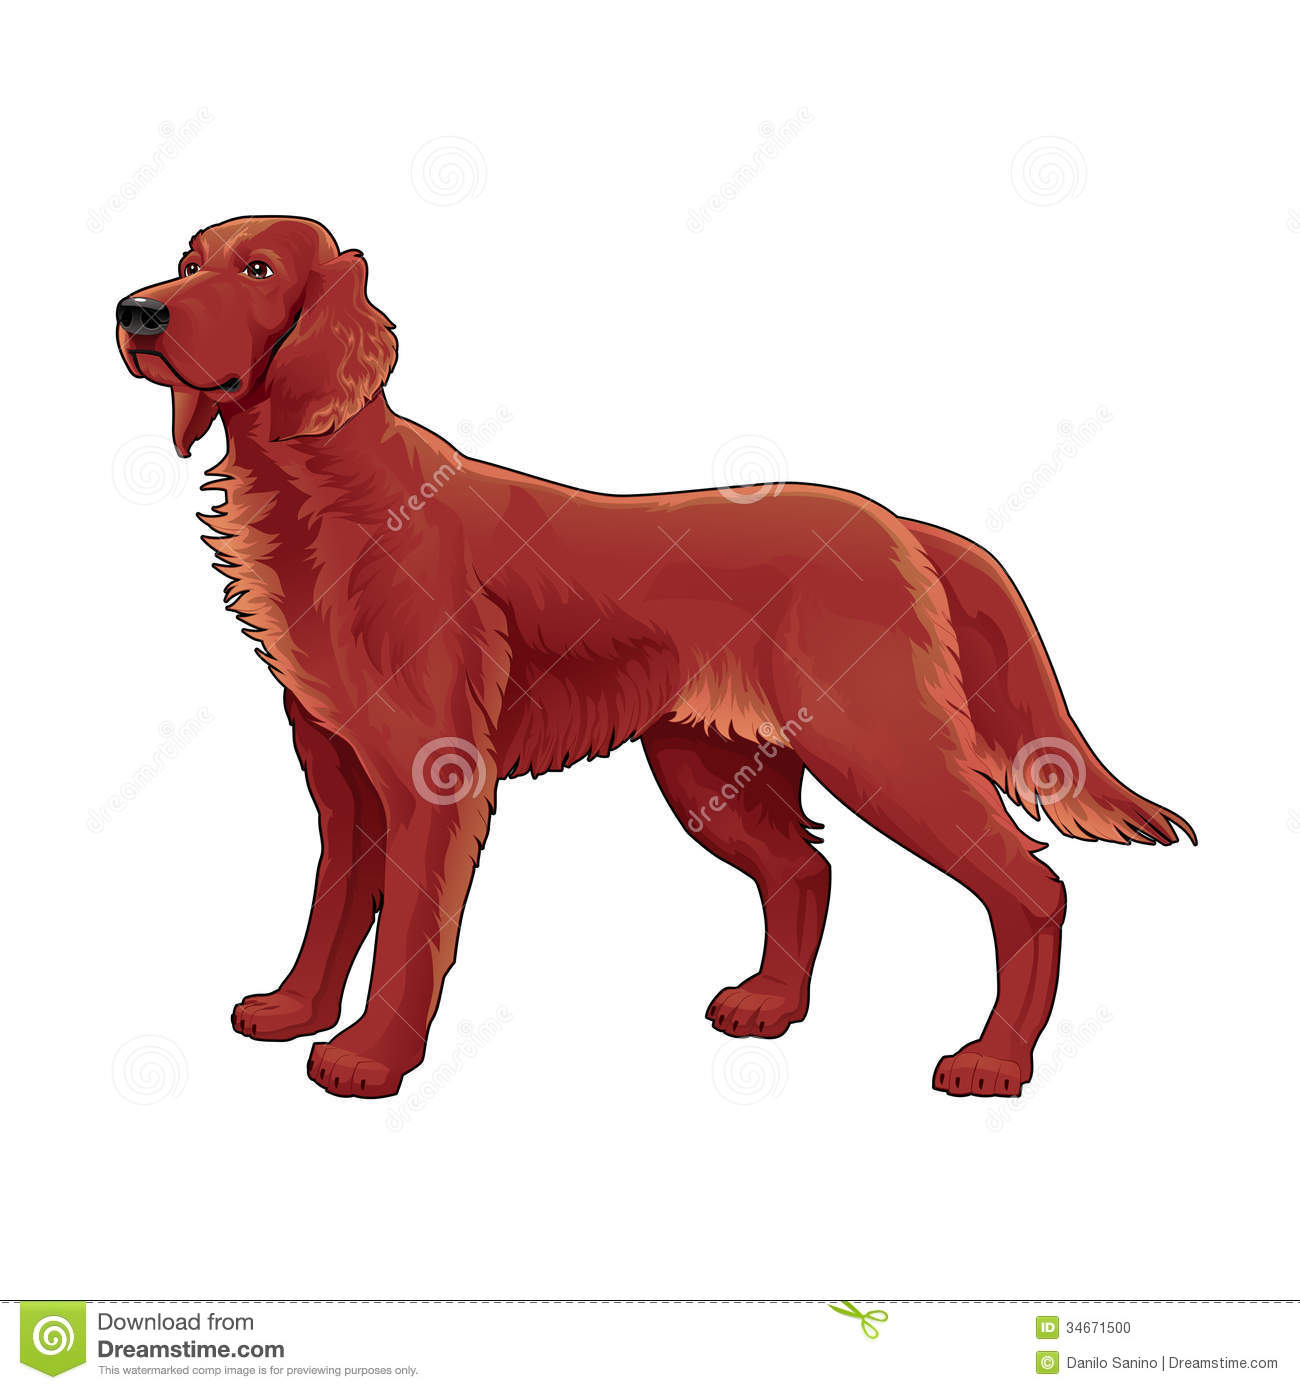 Irish Setter clipart #19, Download drawings